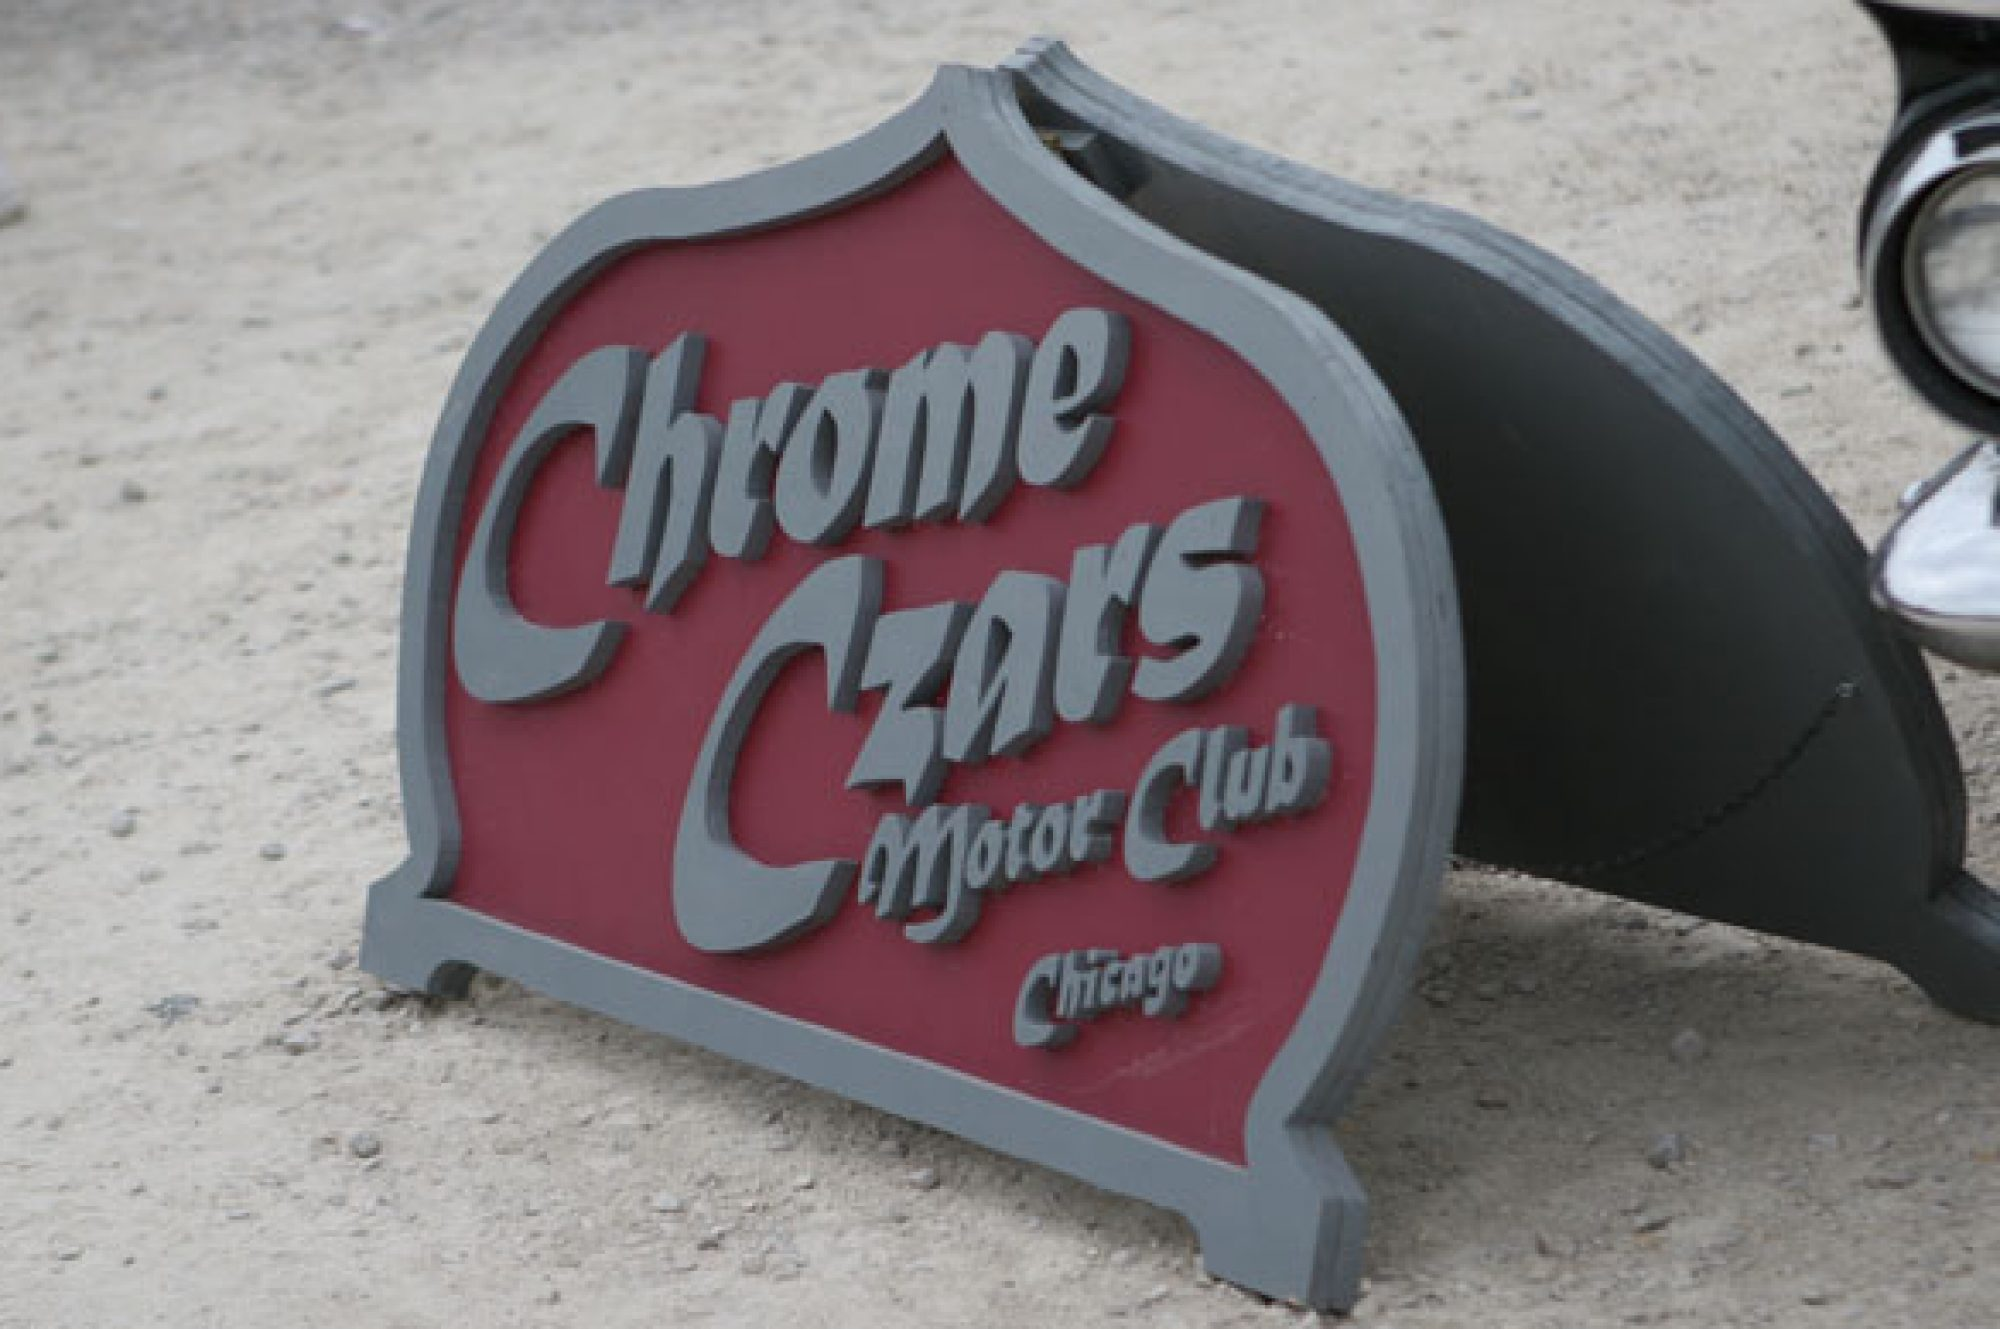 Chrome Czars Motor Club